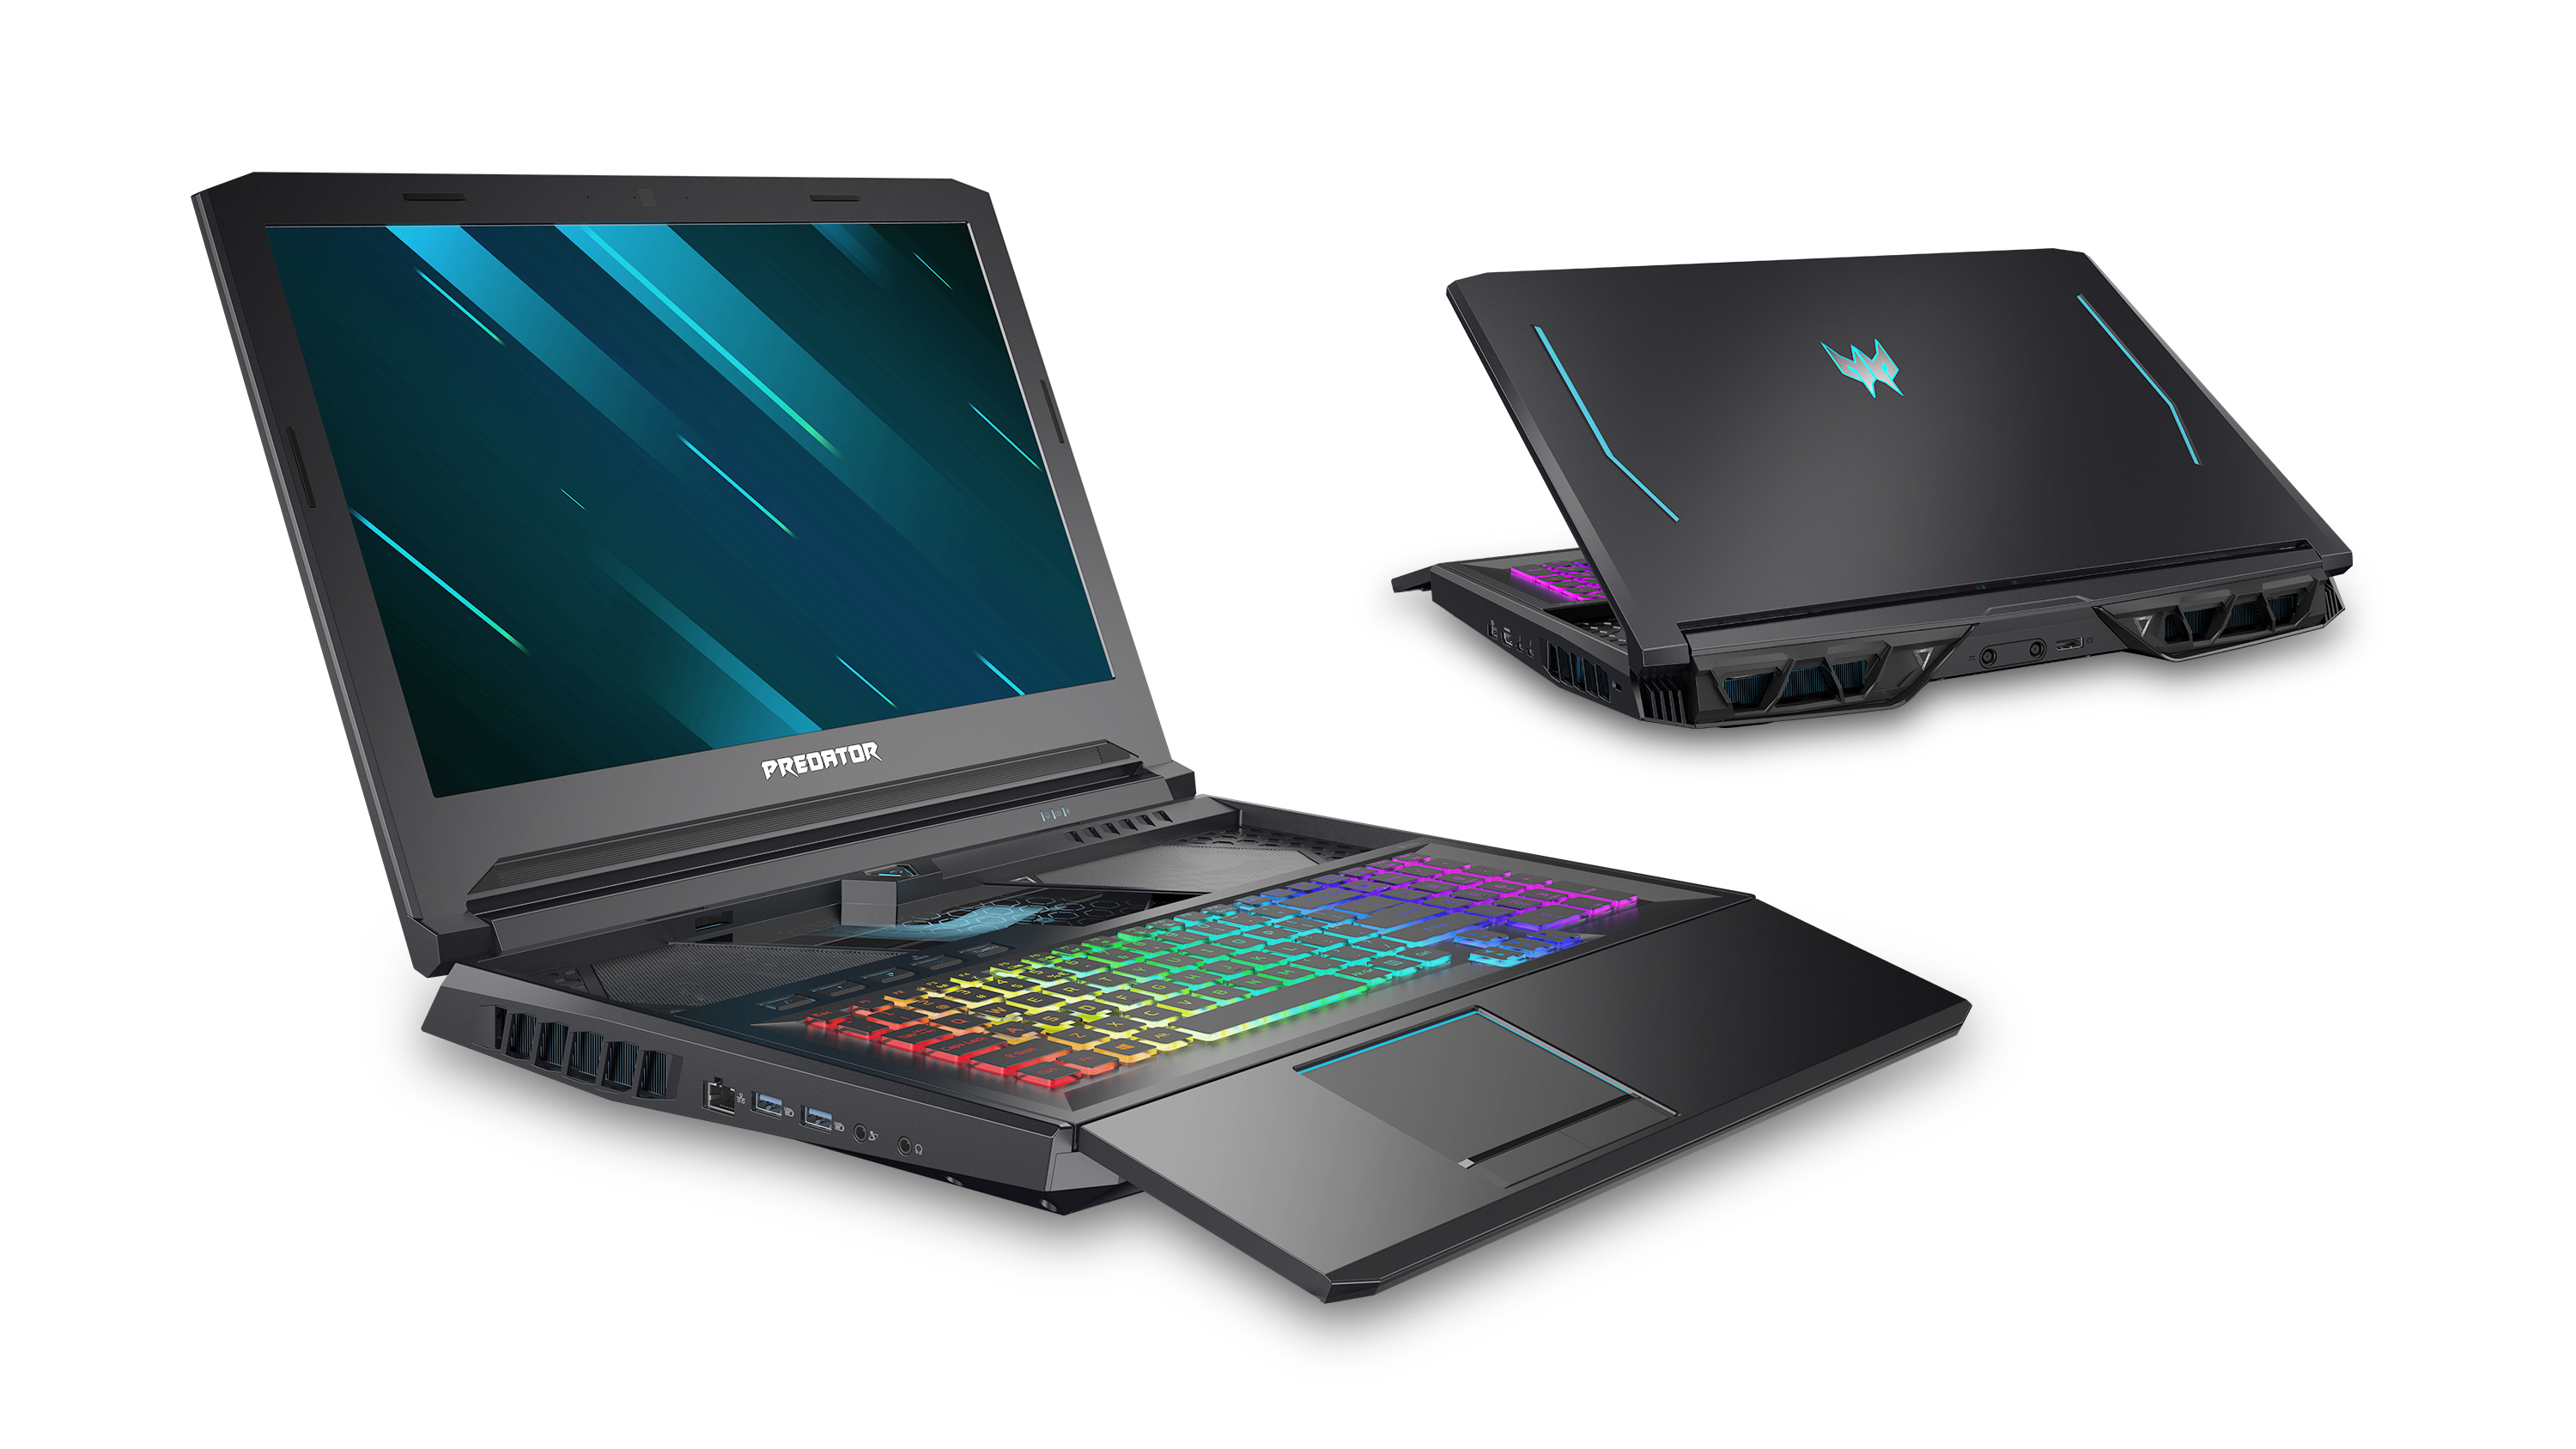 Acer Updates Its Gaming Laptops With New Intel Chips Engadget